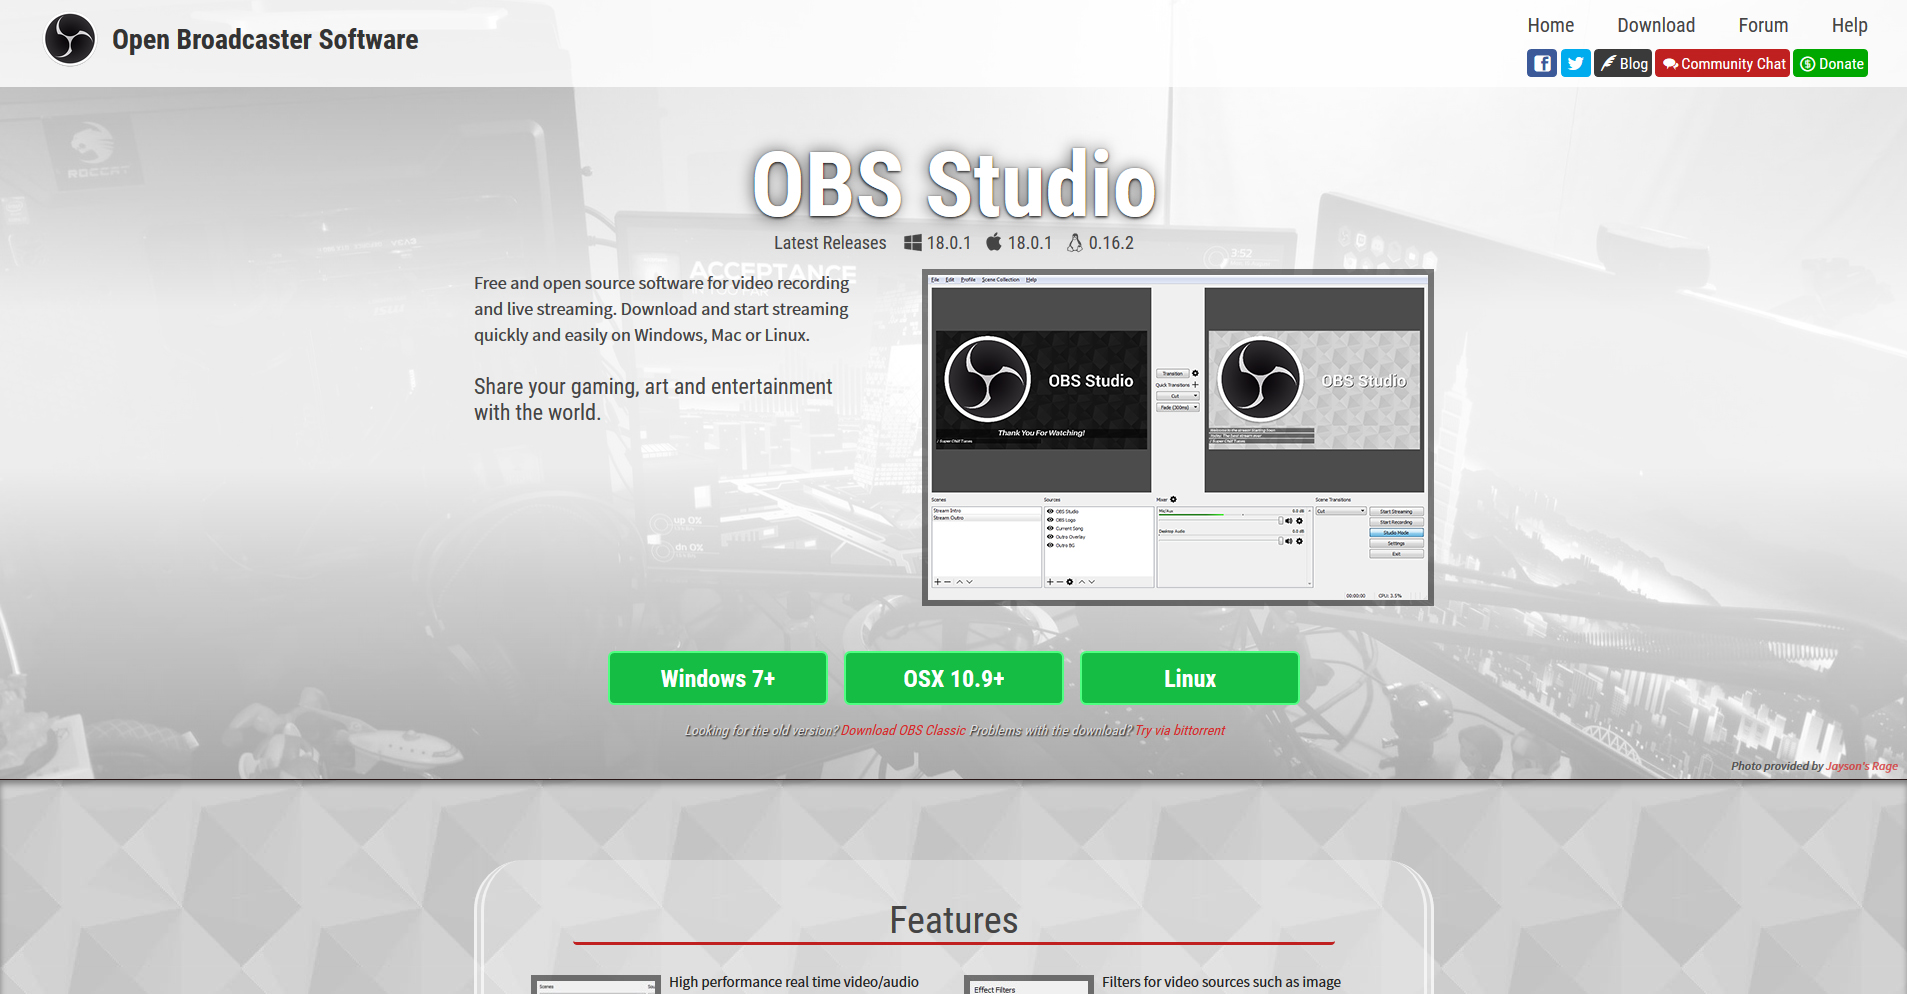 Getting Started with Open Broadcast Software (OBS) | Bryan